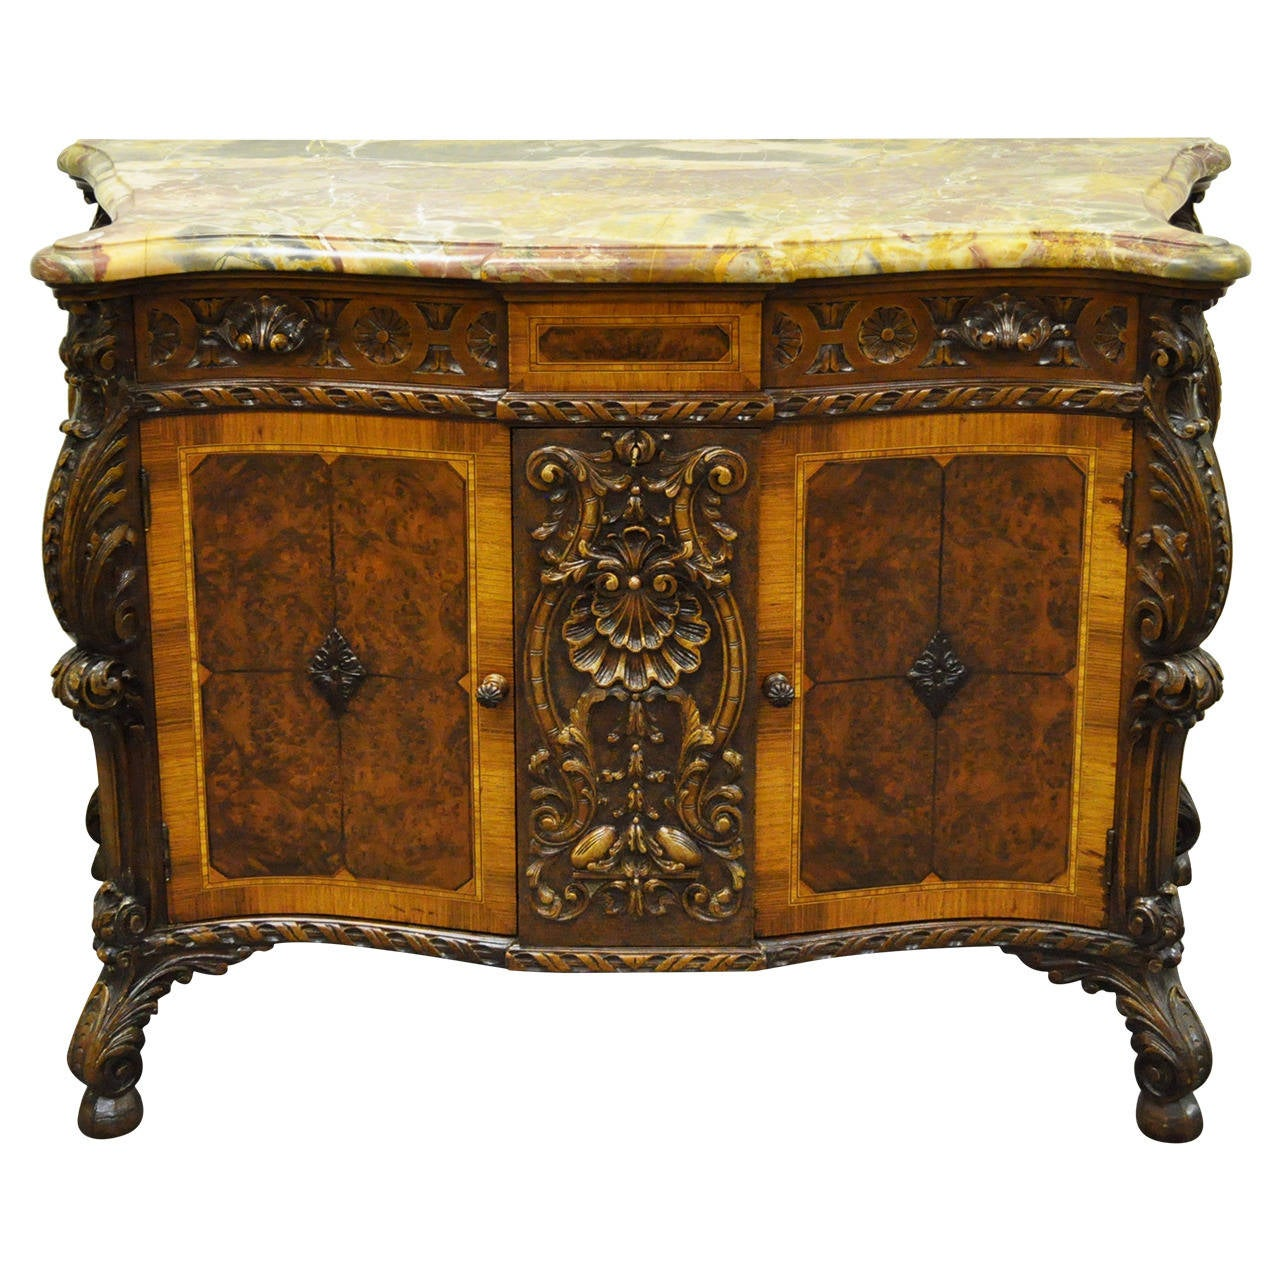 French baroque furniture - French Louis Xv Or Baroque Style Carved Rogue Marble Top Custom Commode 1